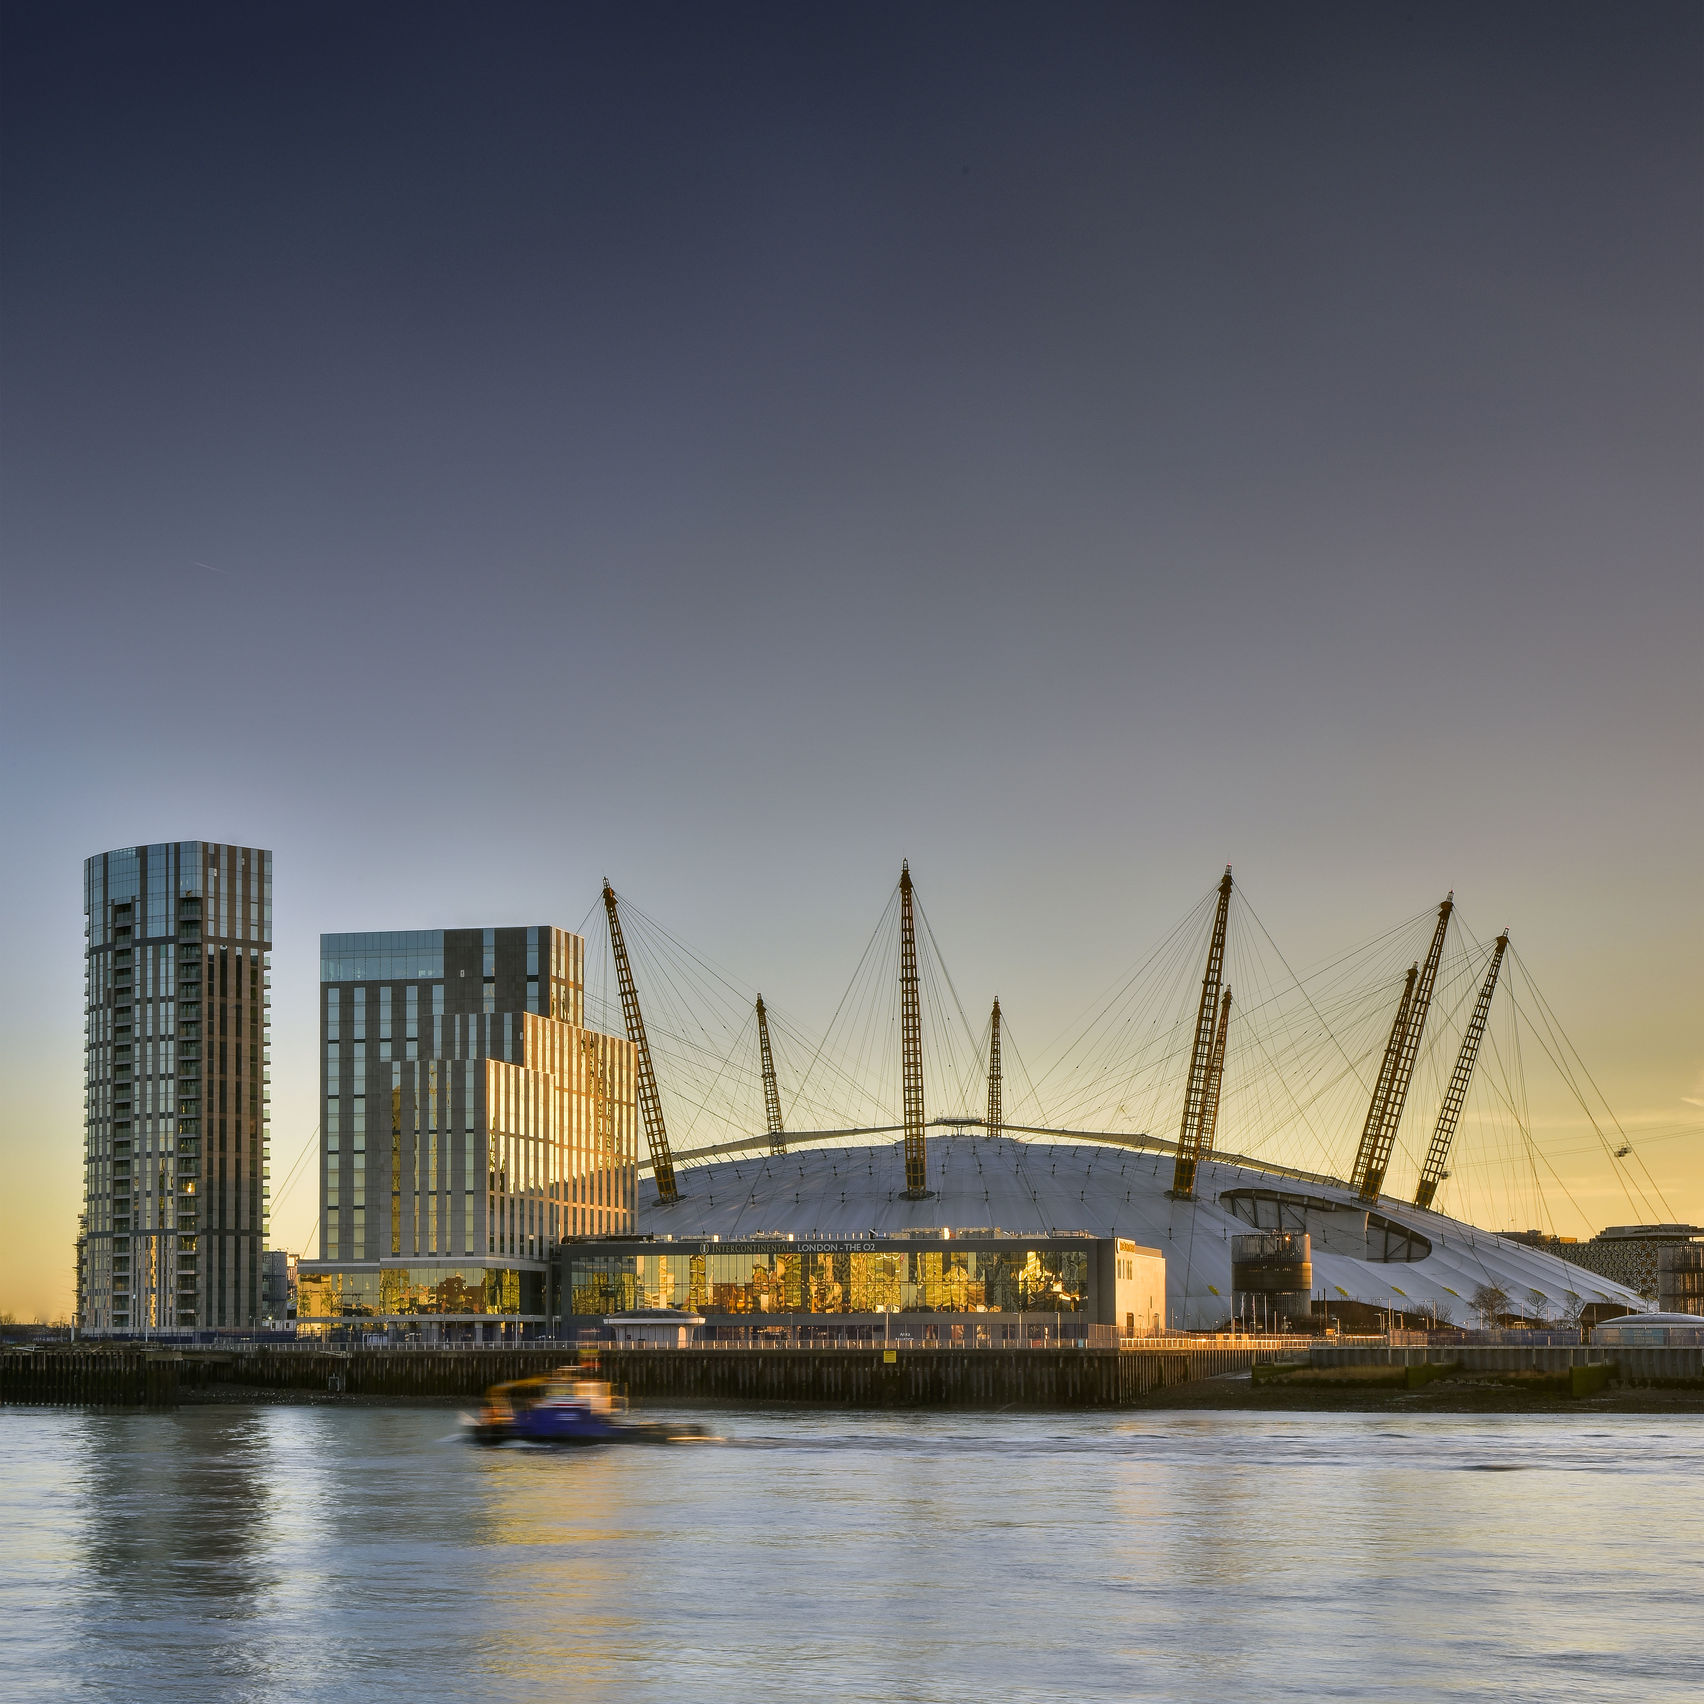 LUXURY HOTEL ON GREENWICH PENINSULA , InterContinental London - The O2